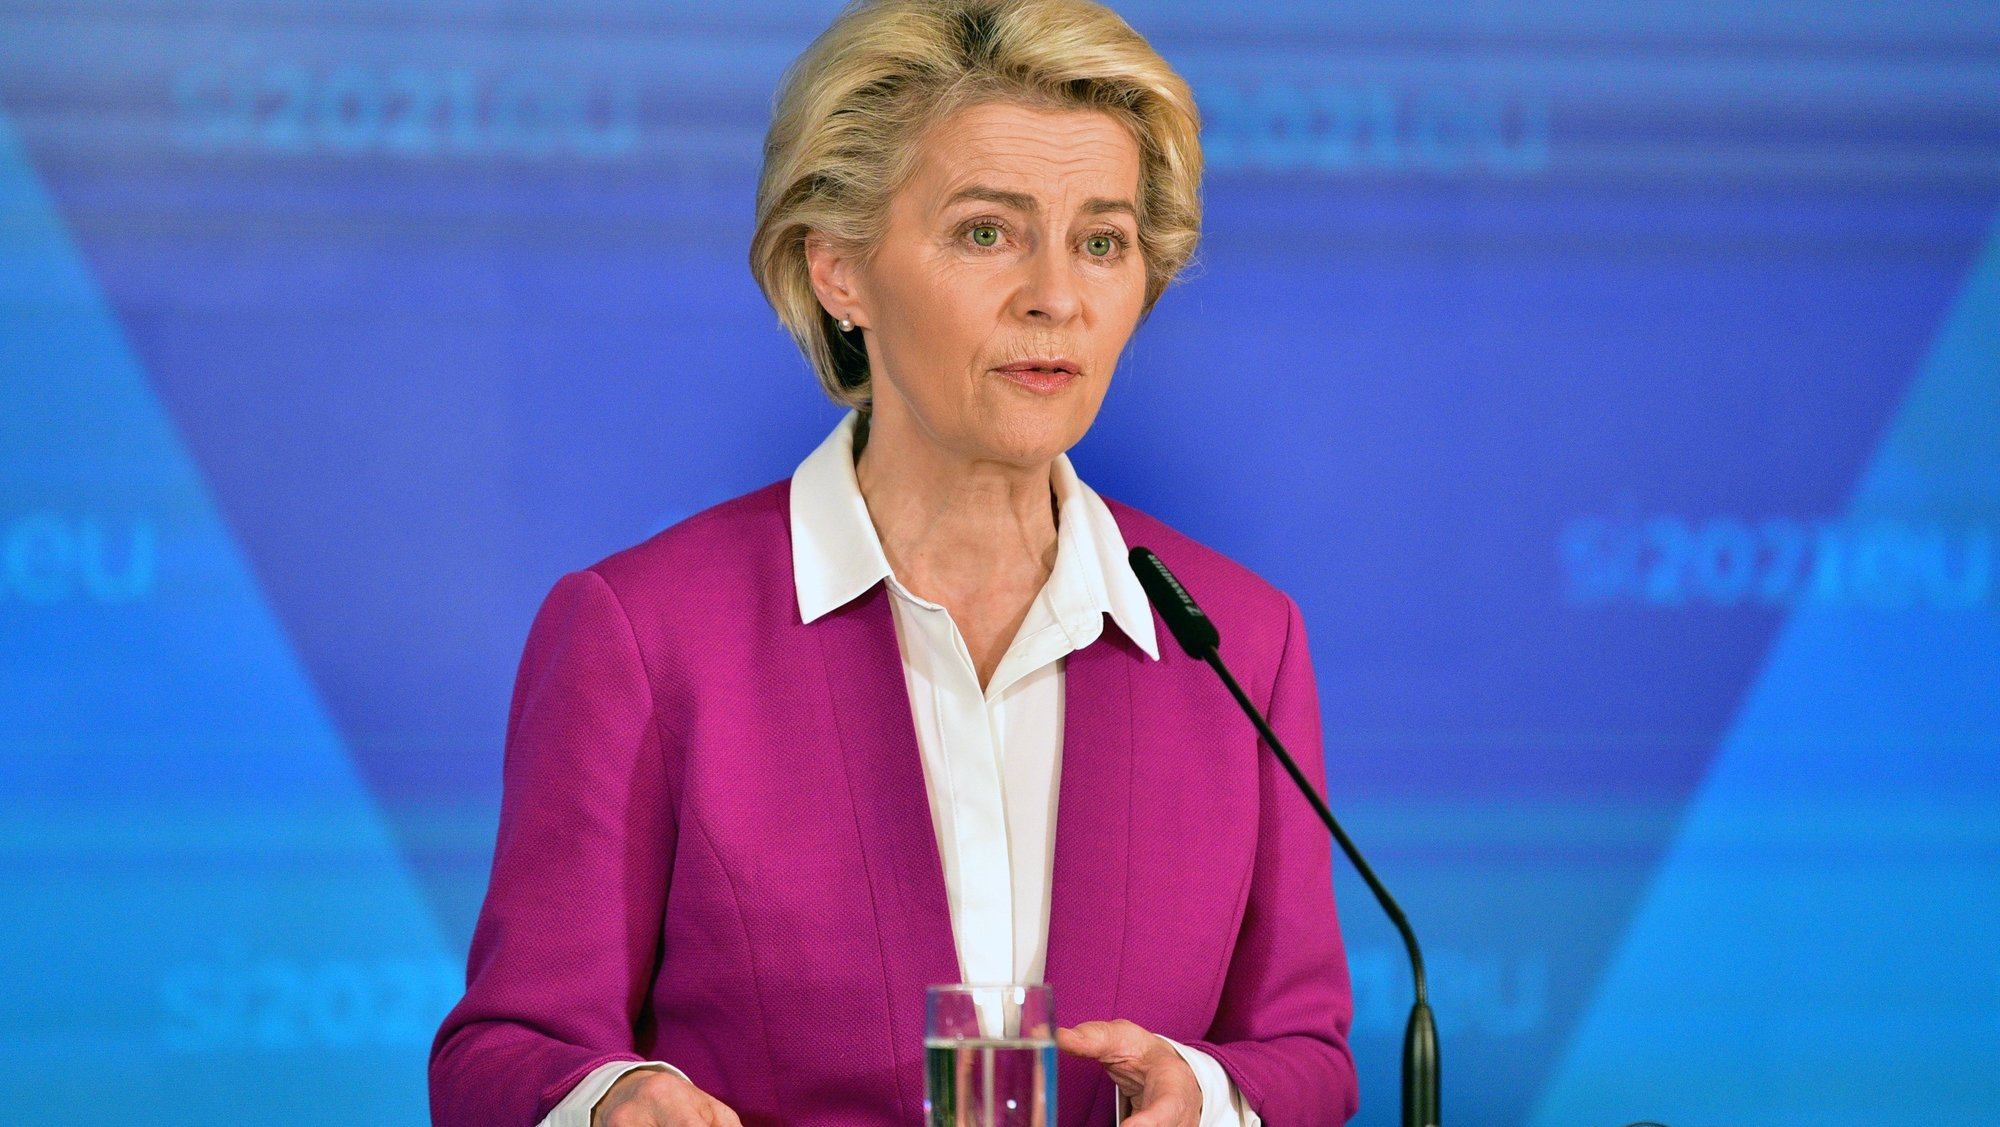 epa09509101 President of the European Commission, Ursula von der Leyen, attends a press conference during an EU-Western Balkans summit in Brdo pri Kranju, in Kranj, Slovenia, 06 October 2021. The summit, part of the EU's strategic engagement with the Western Balkans, is hosted by the Slovenian presidency of the Council and brings together leaders from EU member states and the six Western Balkans partners (Albania, Bosnia and Herzegovina, Serbia, Montenegro, North Macedonia and Kosovo).  EPA/IGOR KUPLJENIK